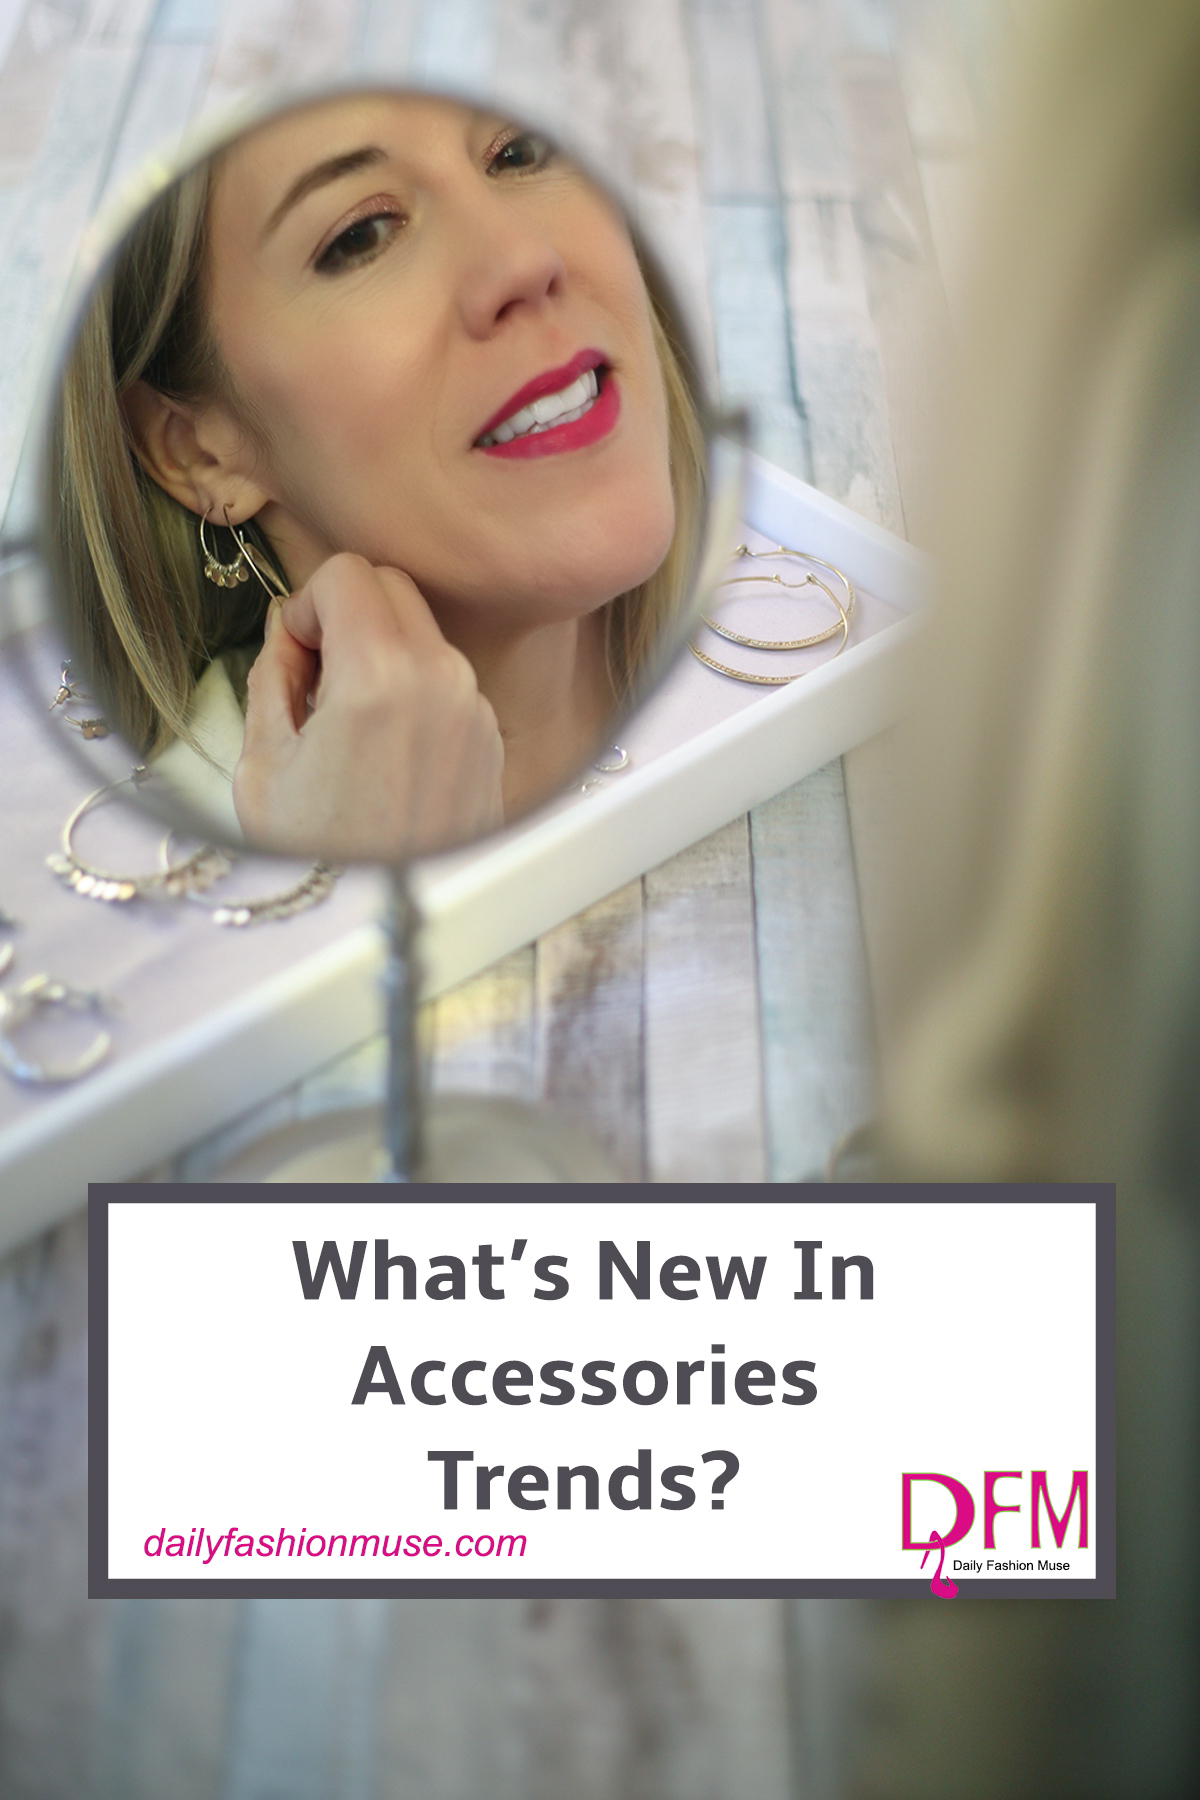 Want to know what the latest in accessories trends will be? Click through to see the next big jewelry trend and how to style it successfully. -Daily Fashion Muse